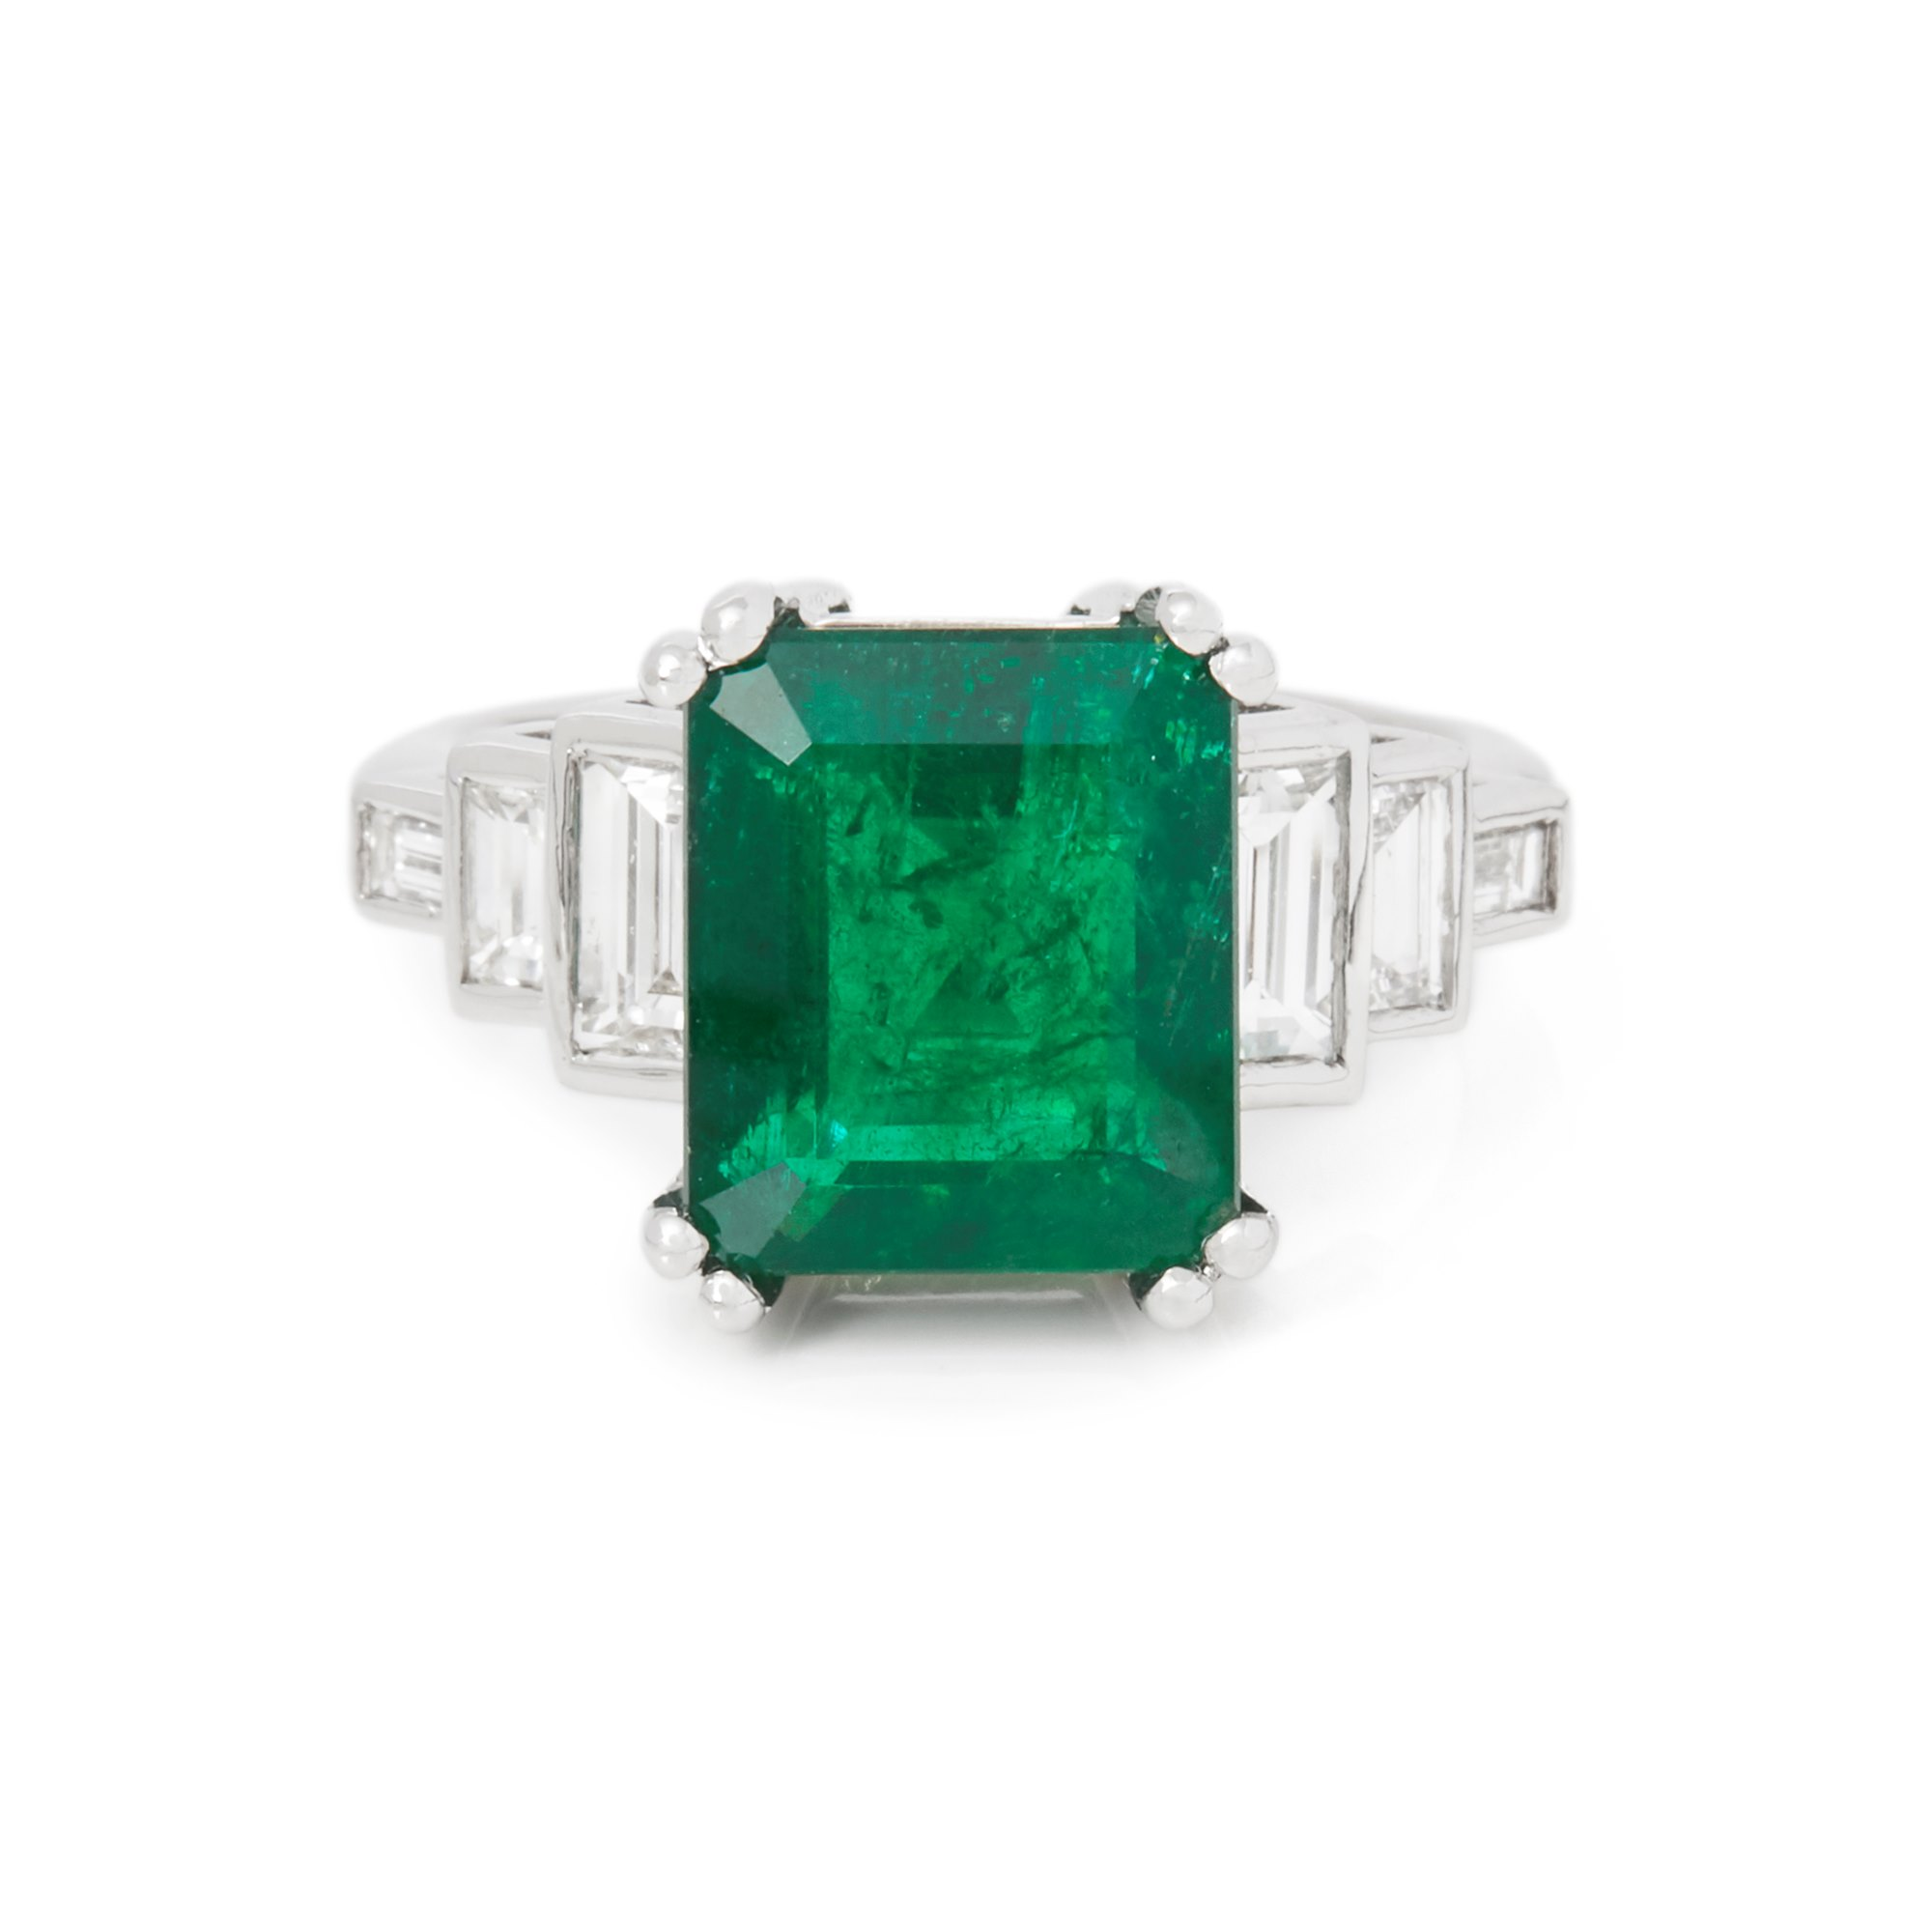 David Jerome Certified 4.8ct Untreated Columbian Emerald Cut Emerald and Diamond 18ct gold Ring